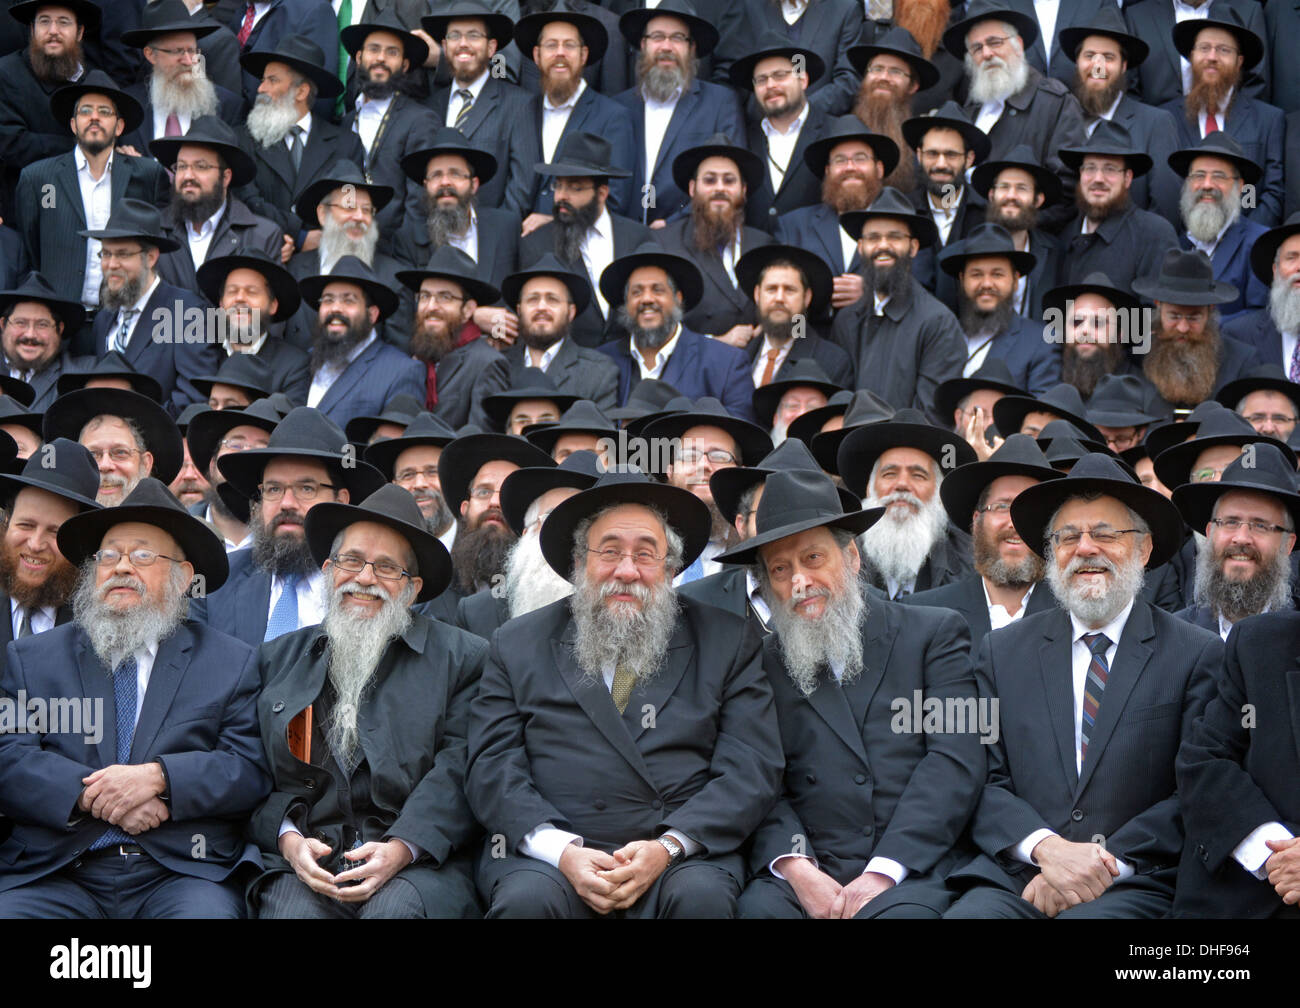 Several rabbis seated preparing for a group photo at the convention of Lubavitch emissaries in Brooklyn, New York 11.3.2013. - Stock Image